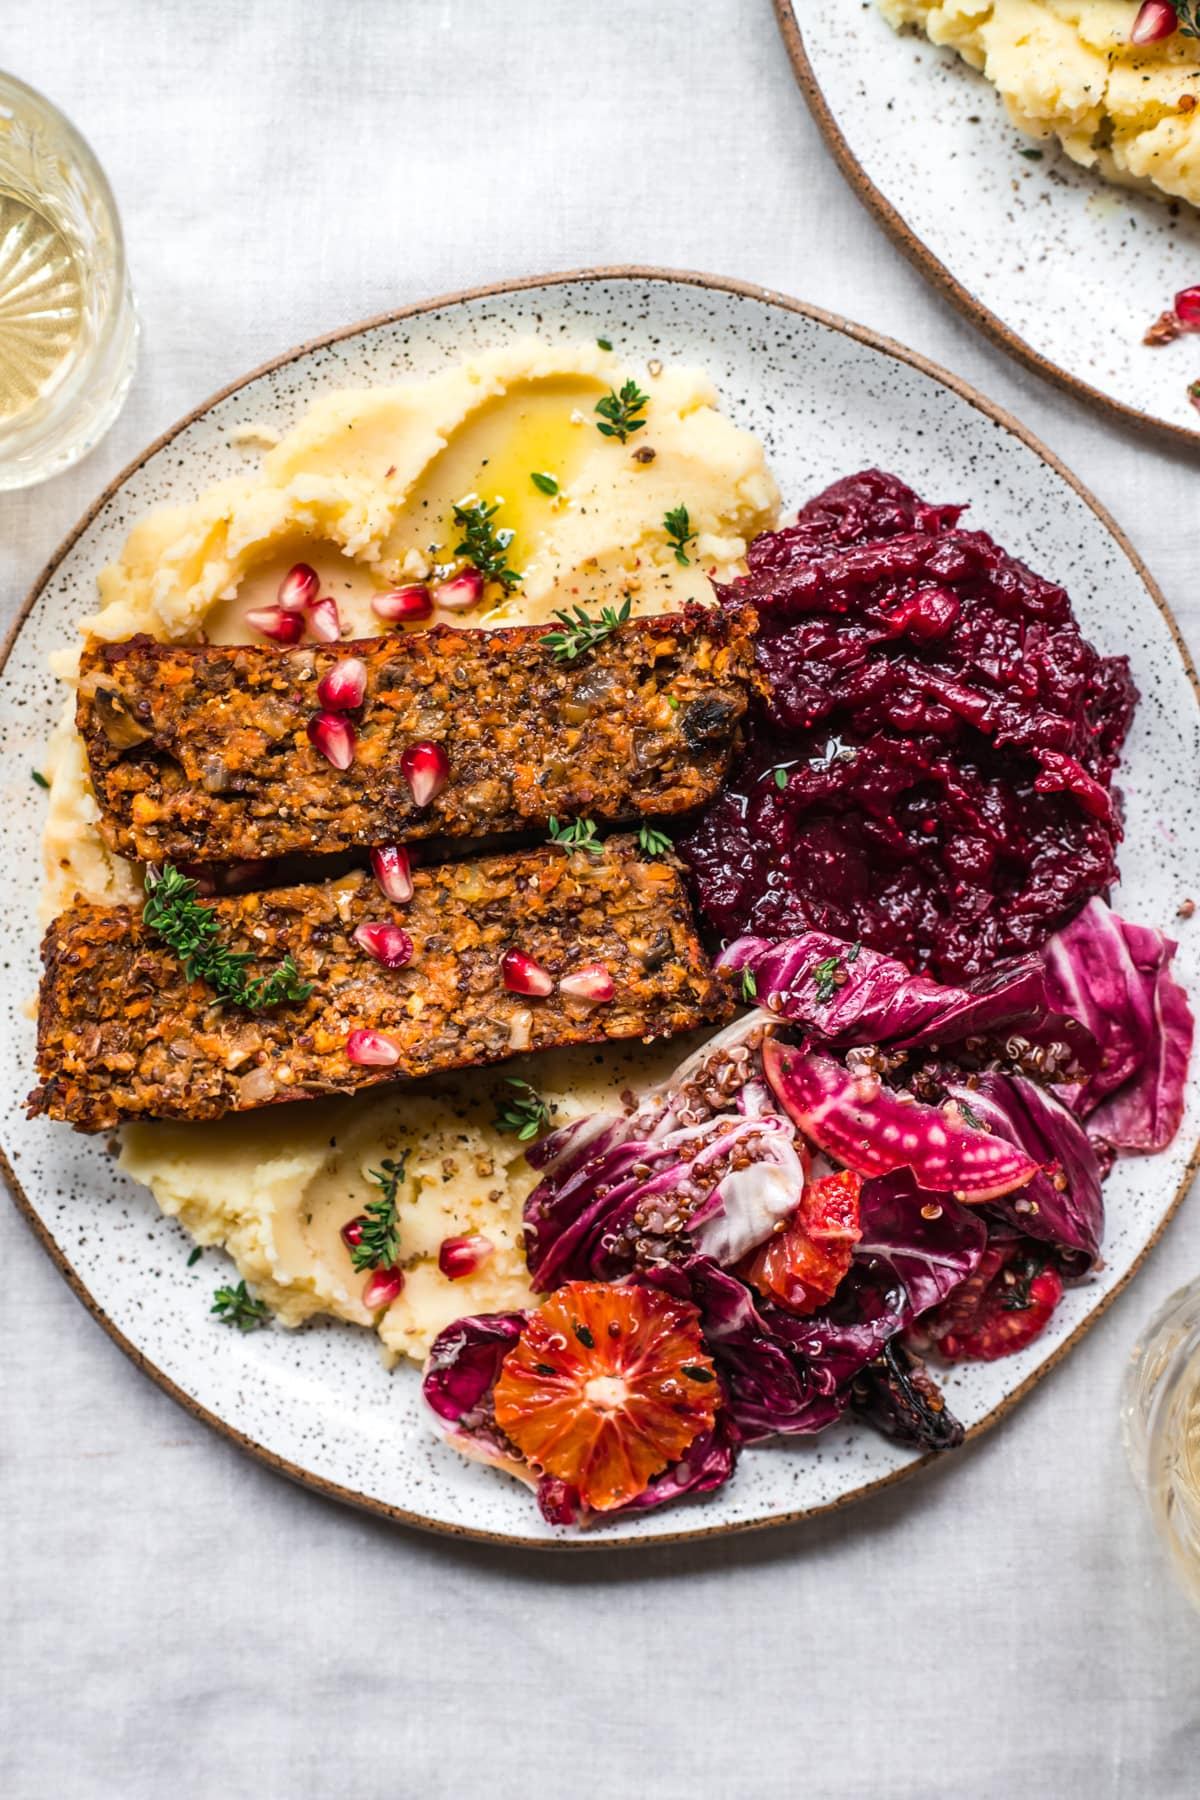 overhead view of vegan meatloaf on a white plate over mashed potatoes with cranberry sauce and salad on the side.